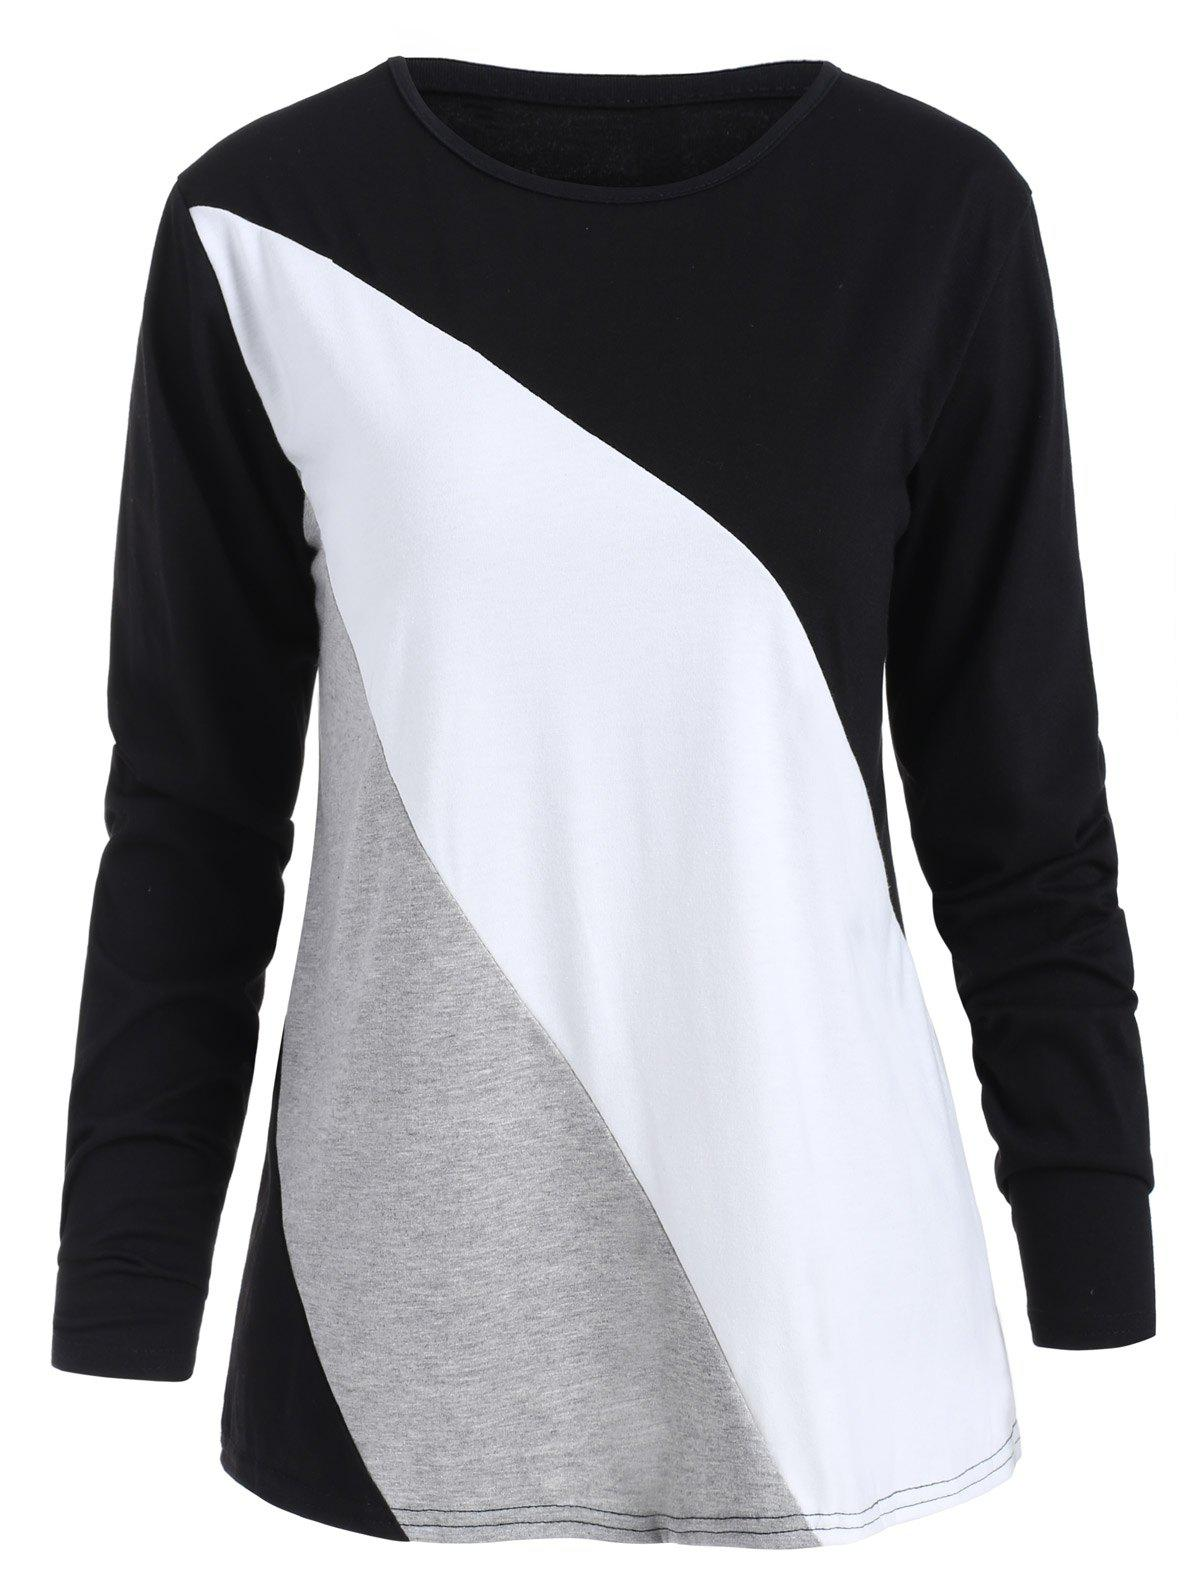 Discount Long Sleeves Color Block T-shirt